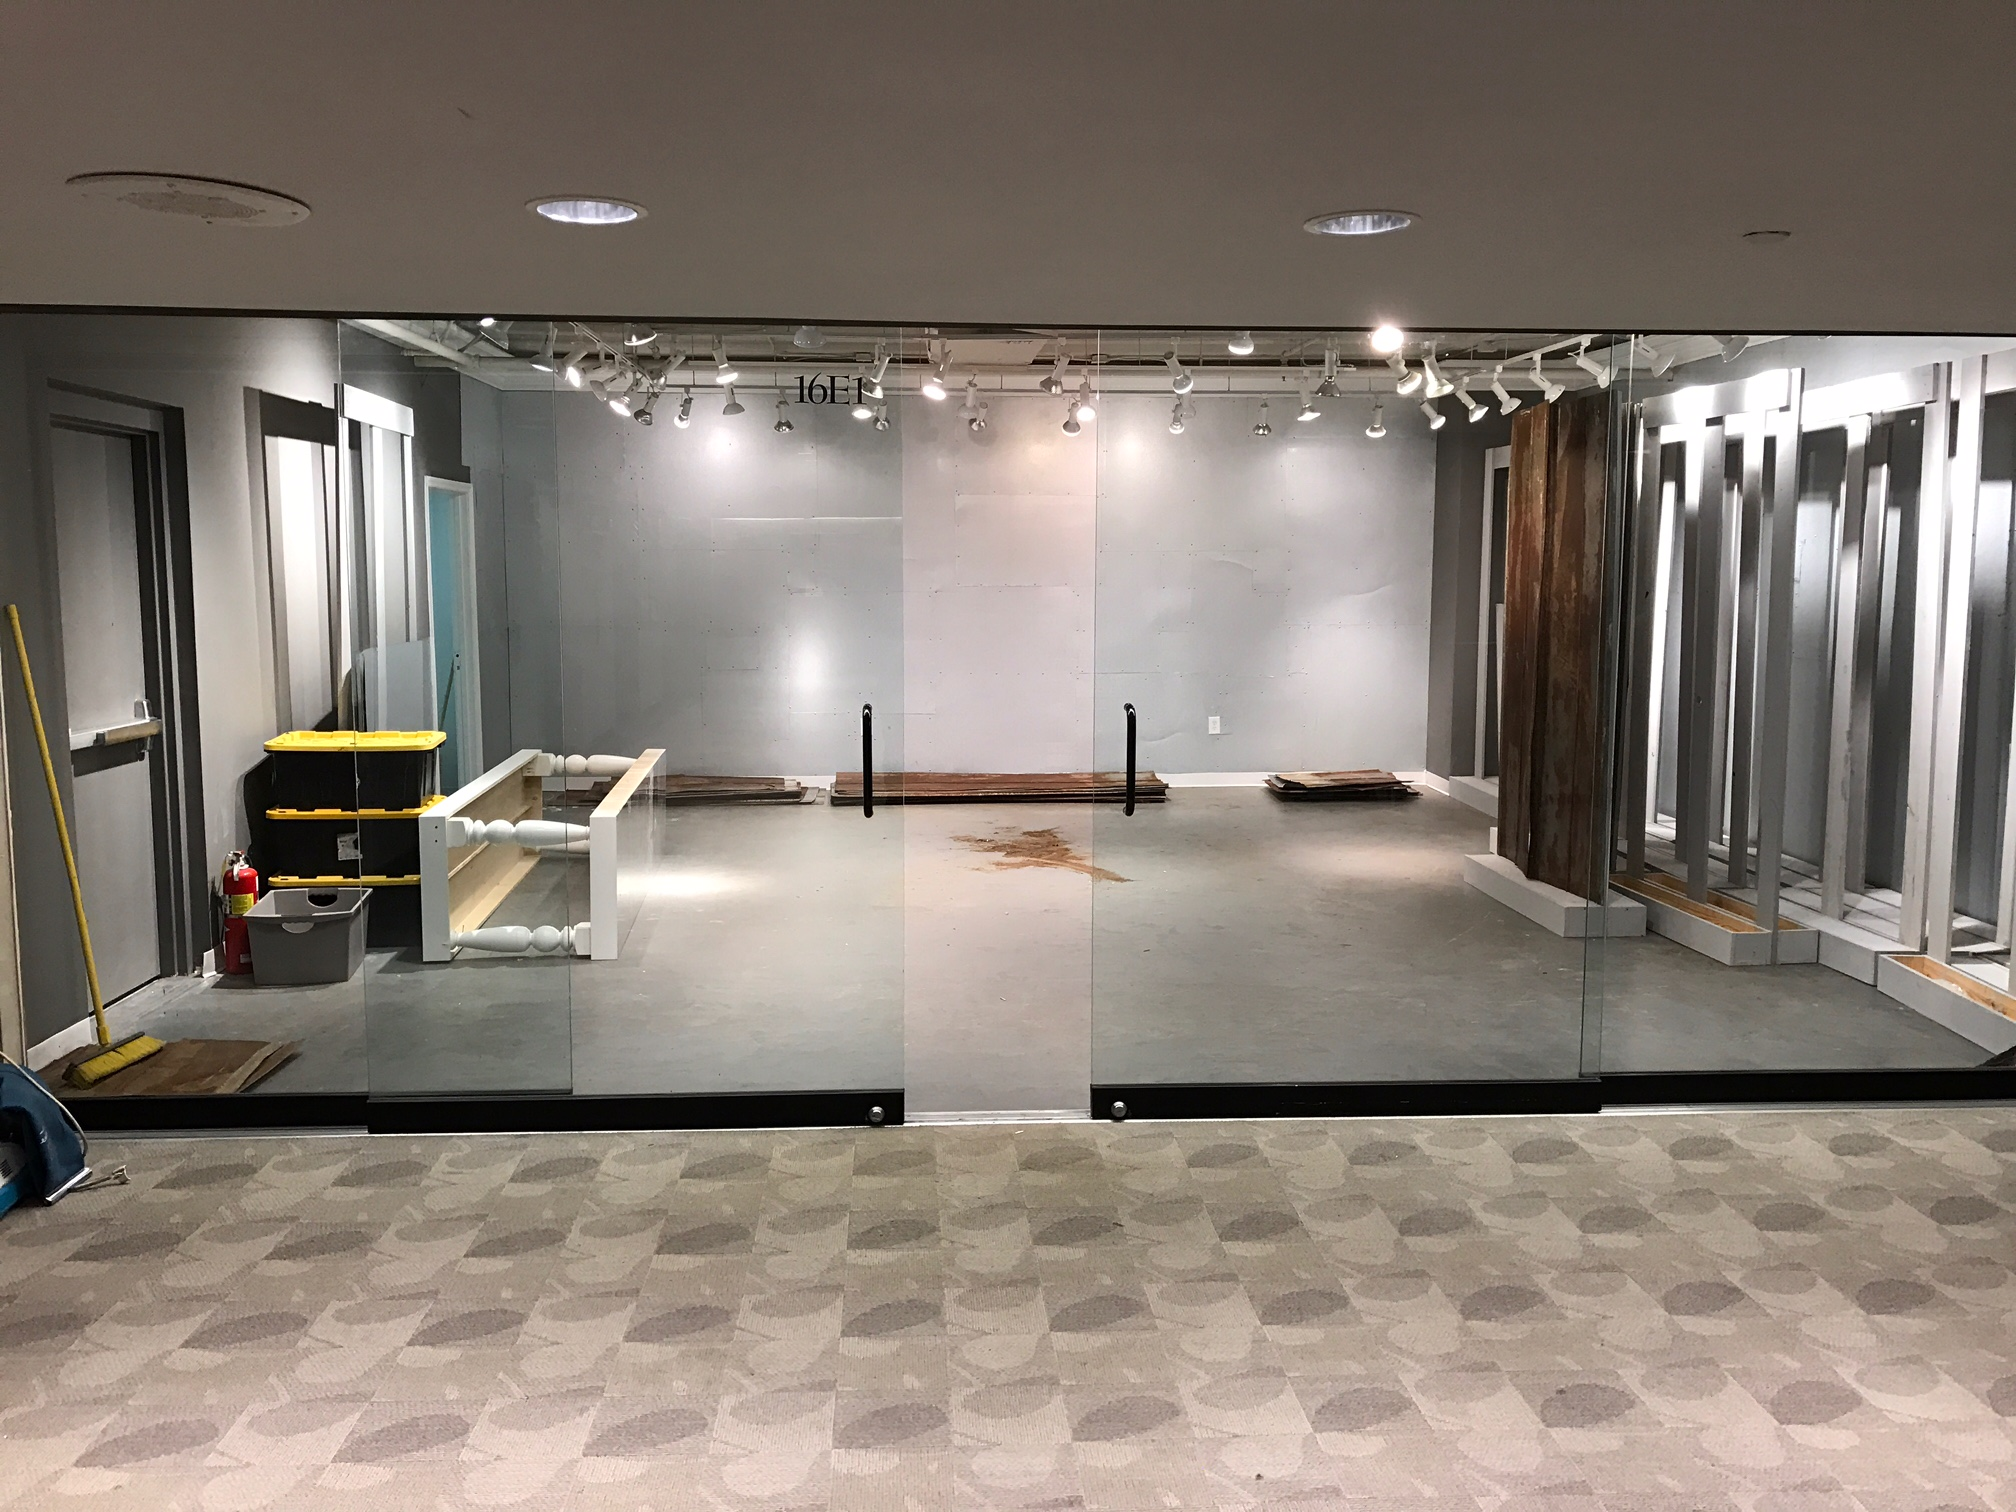 Building 1, Floor 16, Showroom 16-E-1 Waiting on our logo and info to be put on the glass.